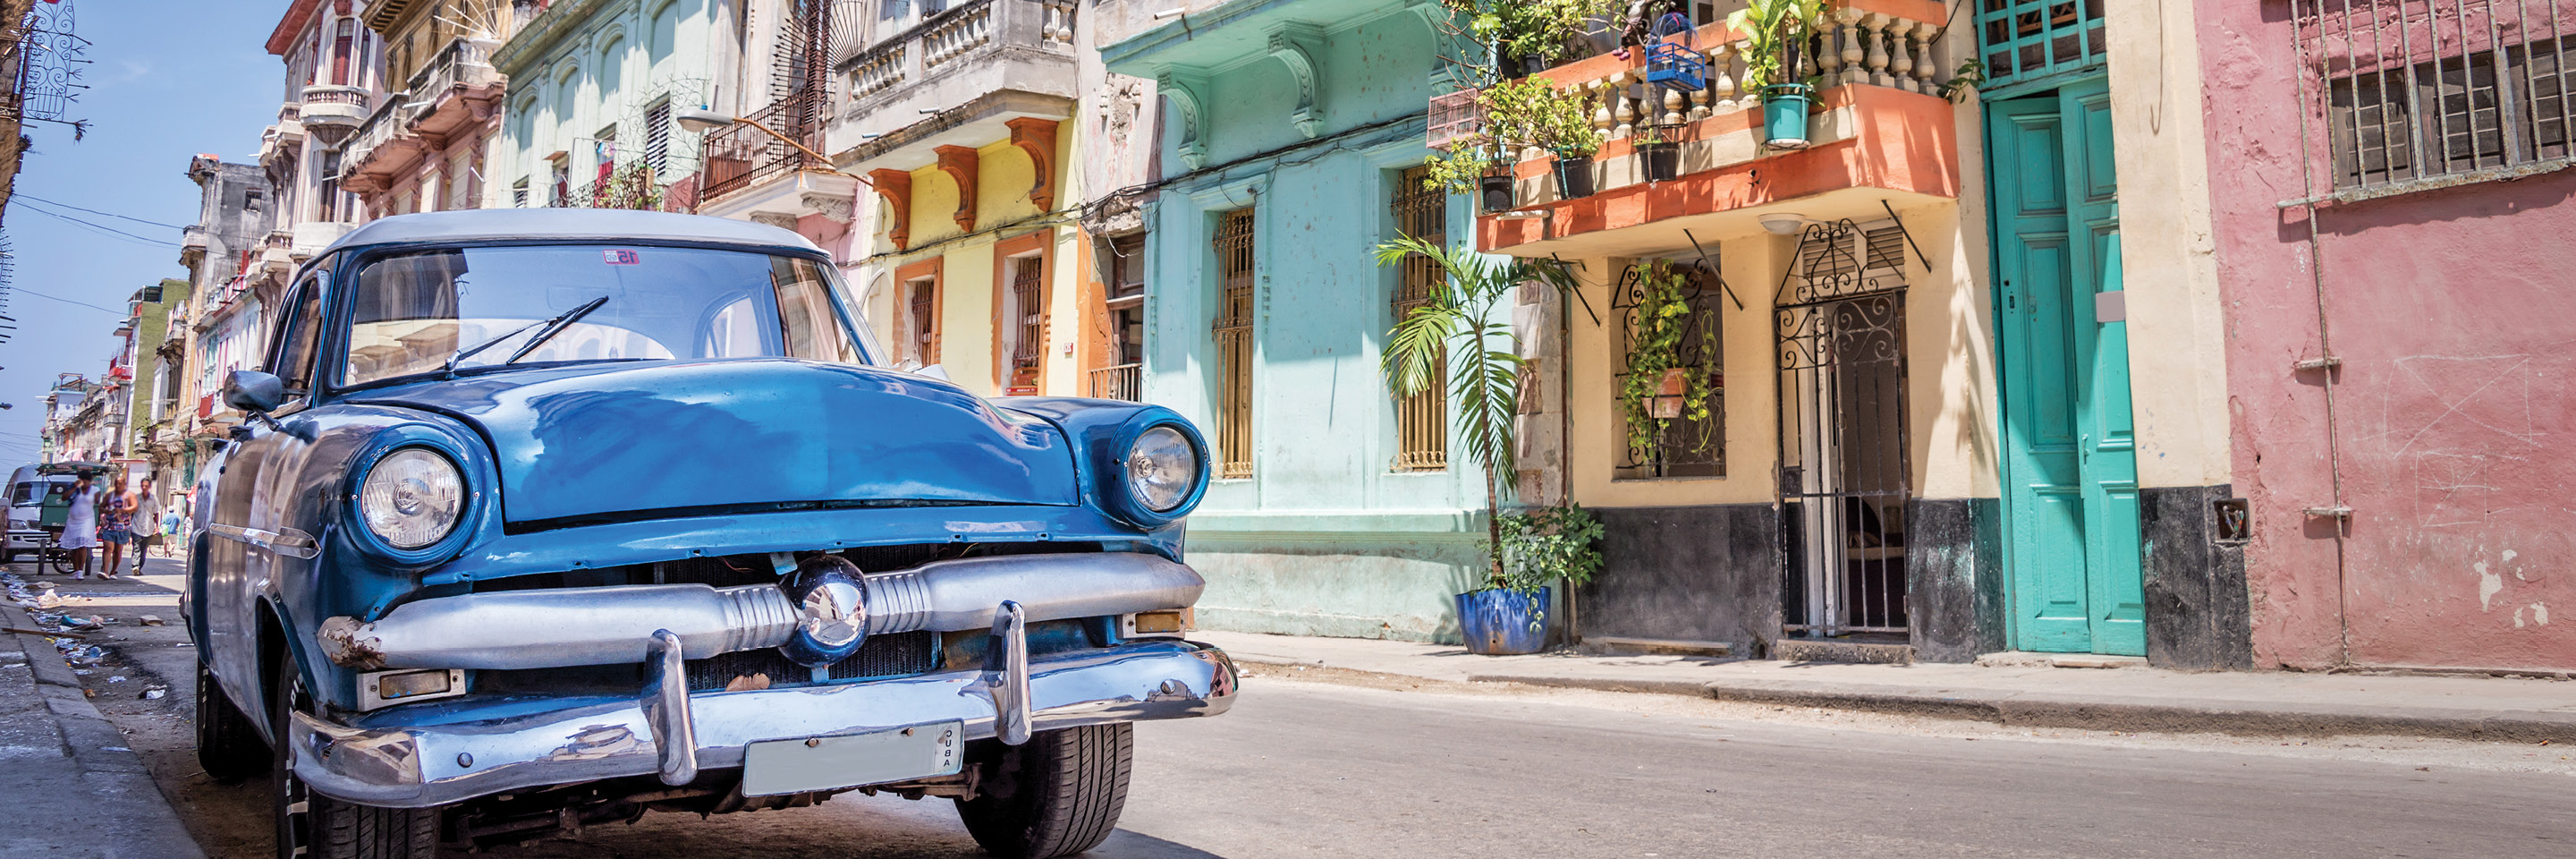 Cuba's People, Culture & Colonial Cities